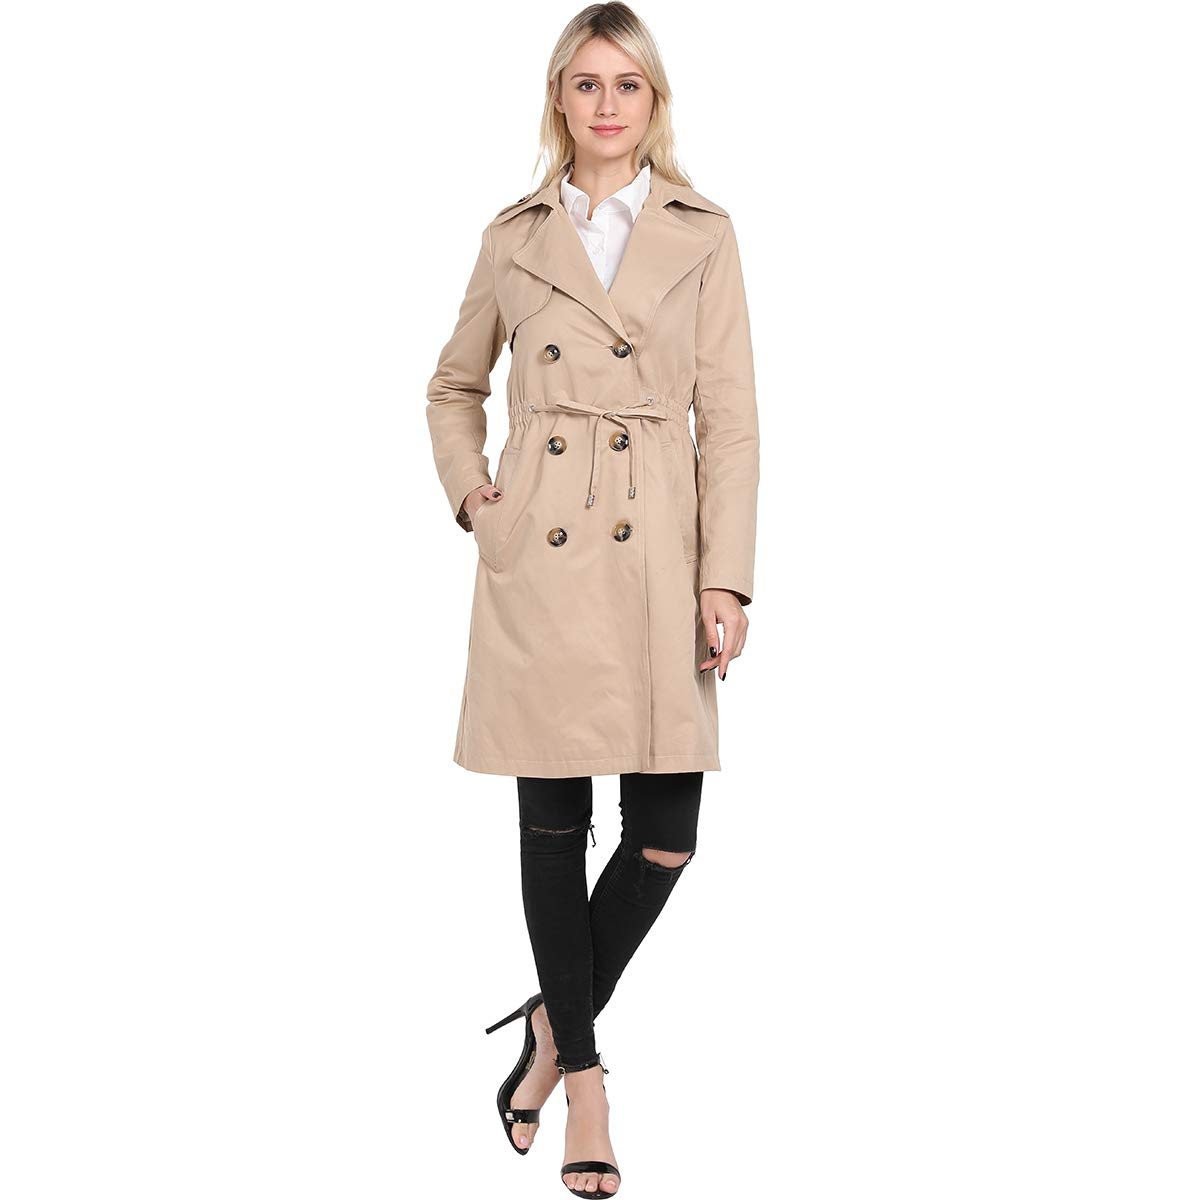 ForeMode Women's Double Breasted Mid-Length Trench Coat Classic Overcoat with Belt (Beige Khaki,XL) by ForeMode